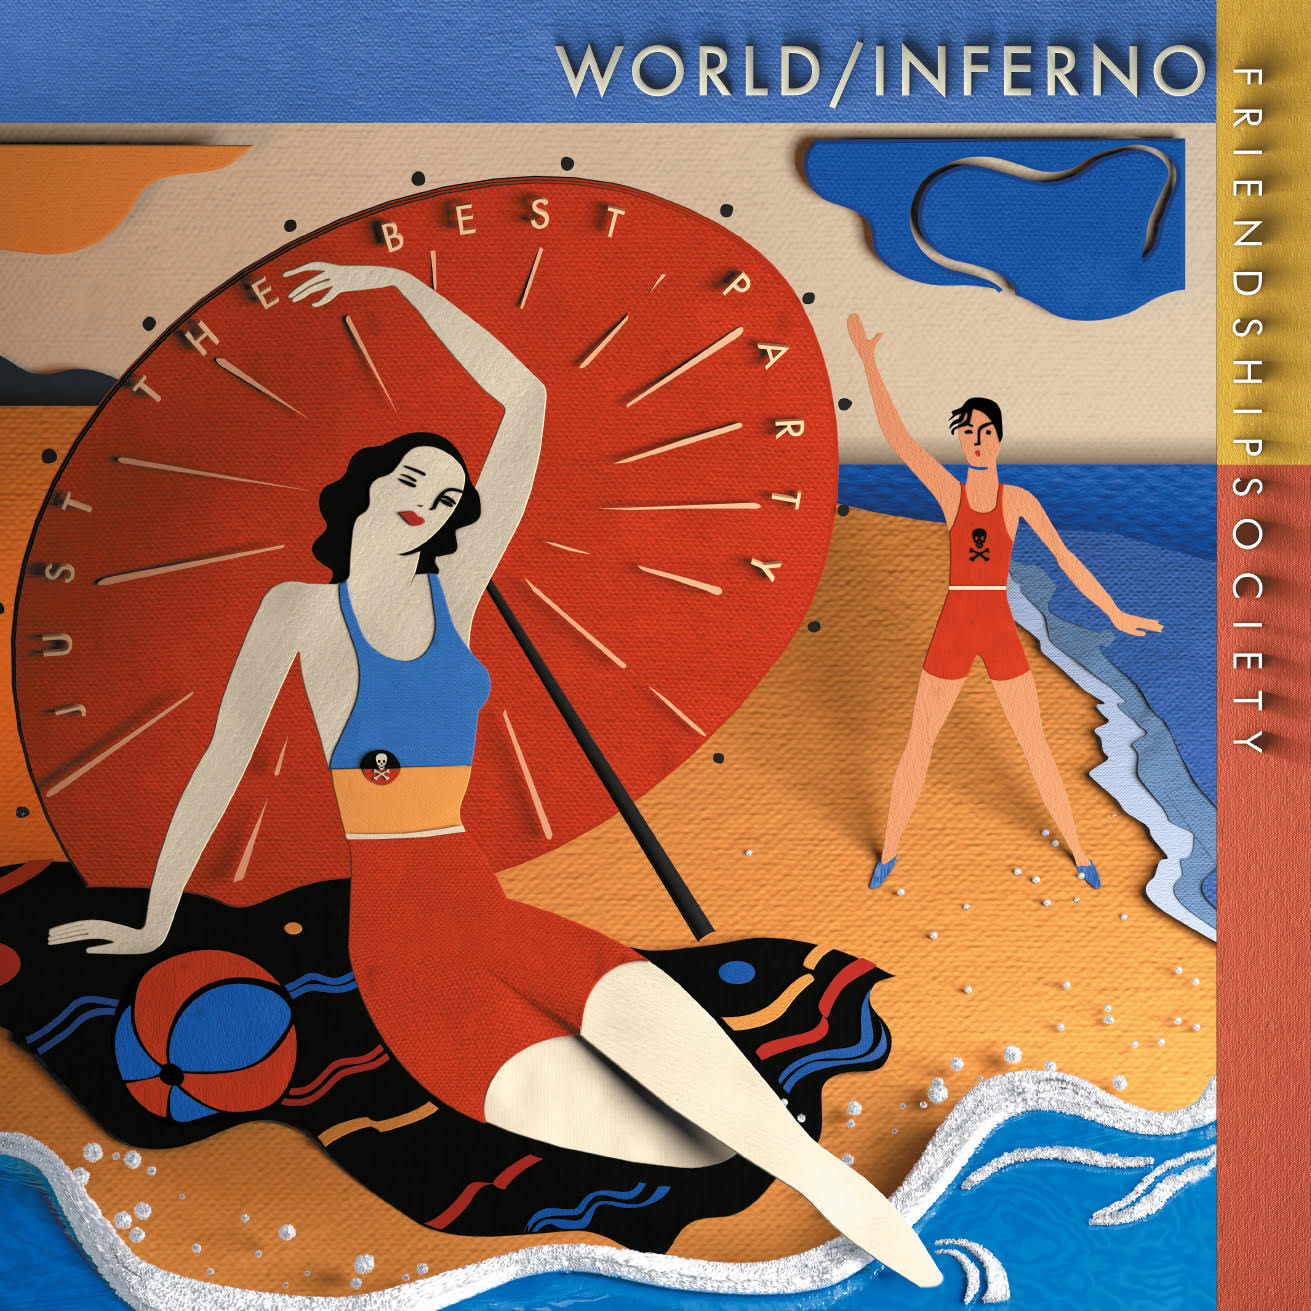 The World/Inferno Friendship Society - Just The Best Party